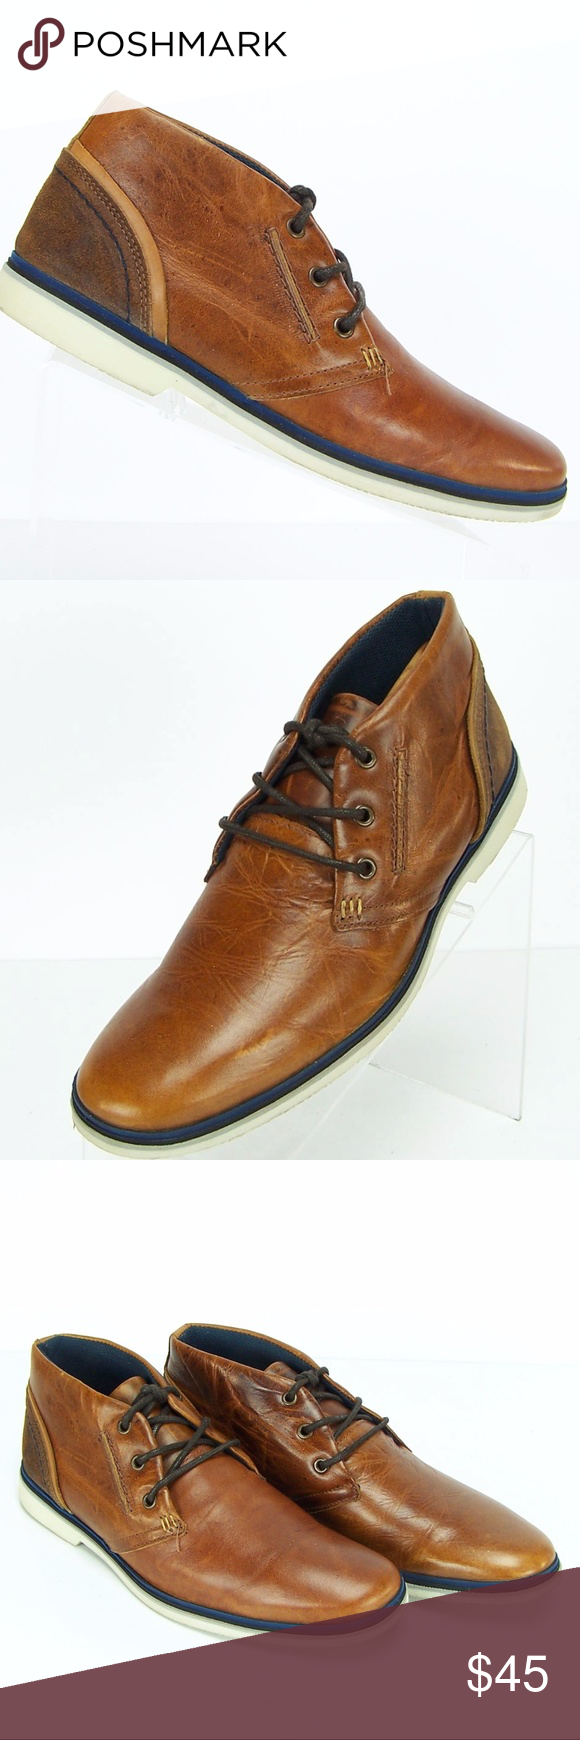 d127aecd71f Aldo Bellini Shoes Men Brown Leather Chukka Boots Aldo Bellini Shoes ...